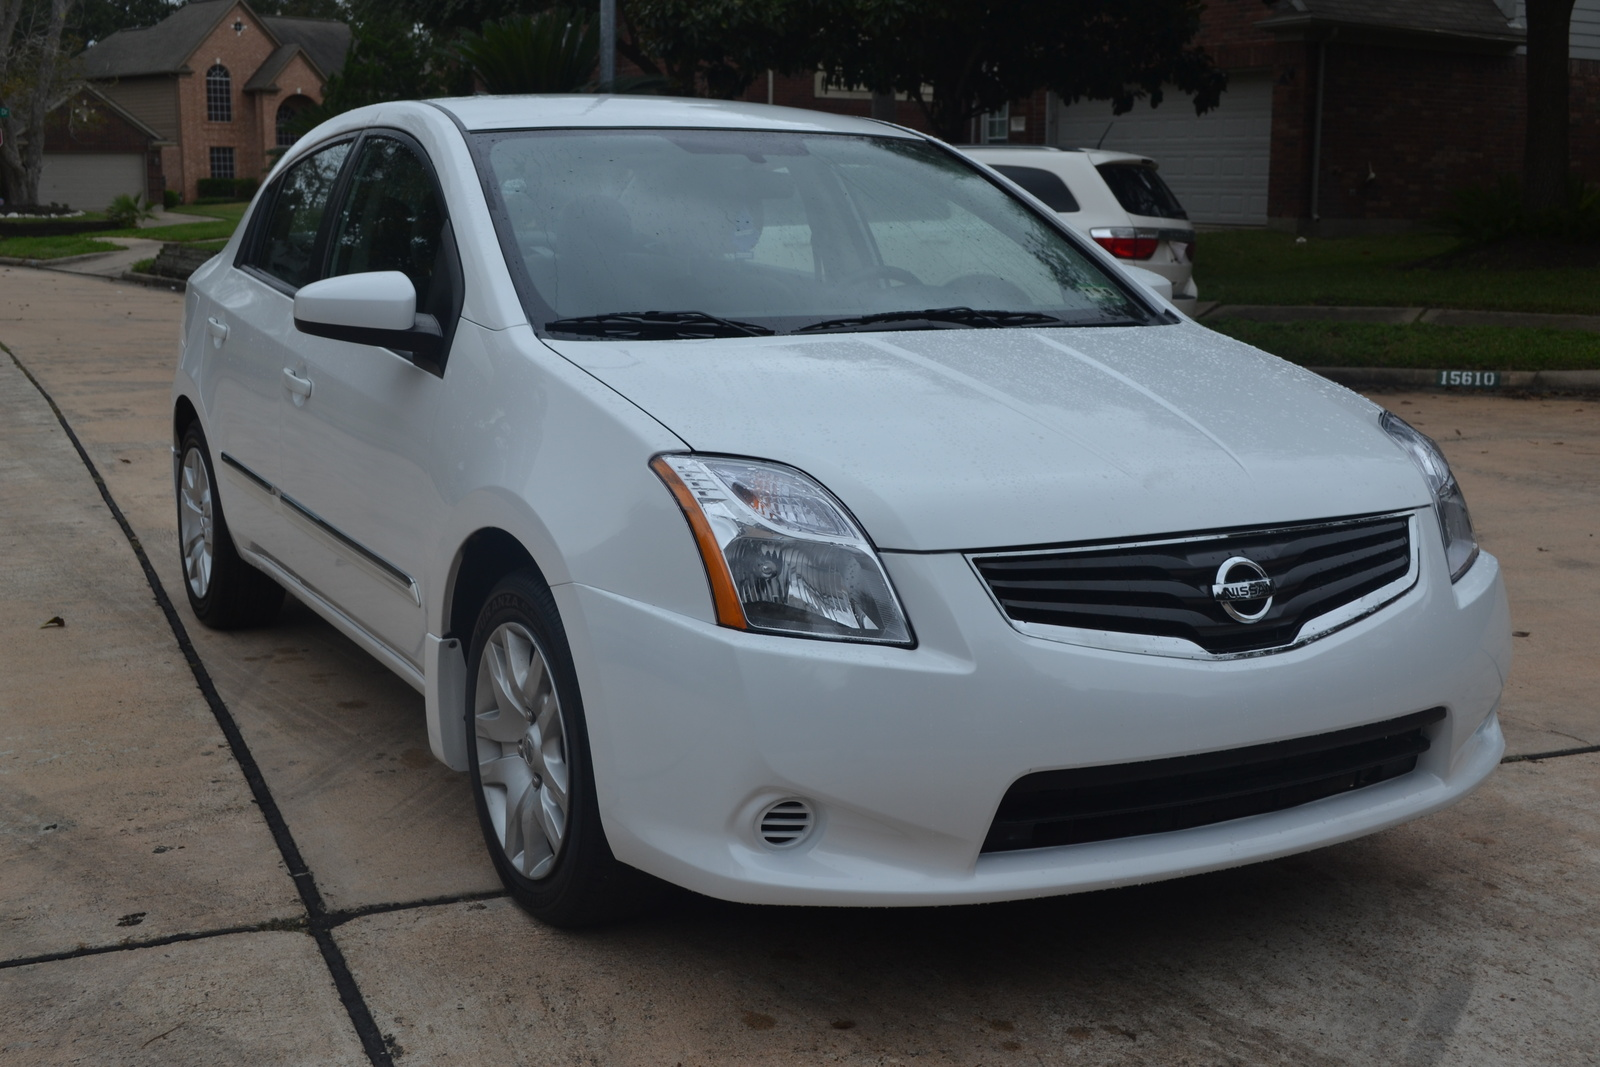 used nissan sentra for sale houston tx cargurus. Black Bedroom Furniture Sets. Home Design Ideas